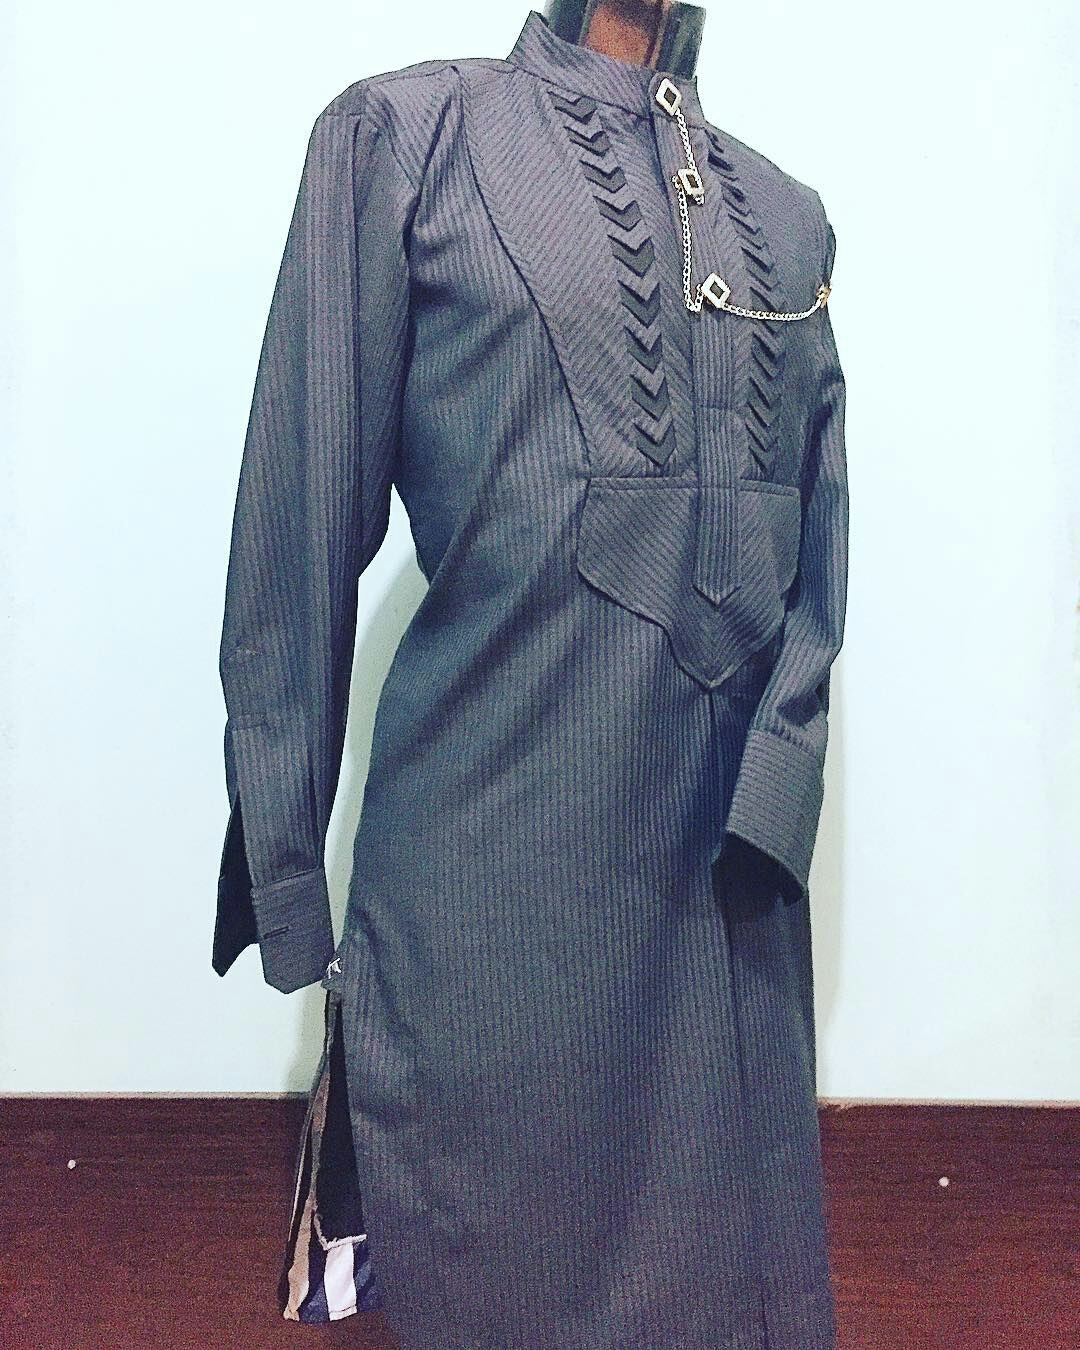 Latest Etibo Native Wear Styles That Are Trendy8